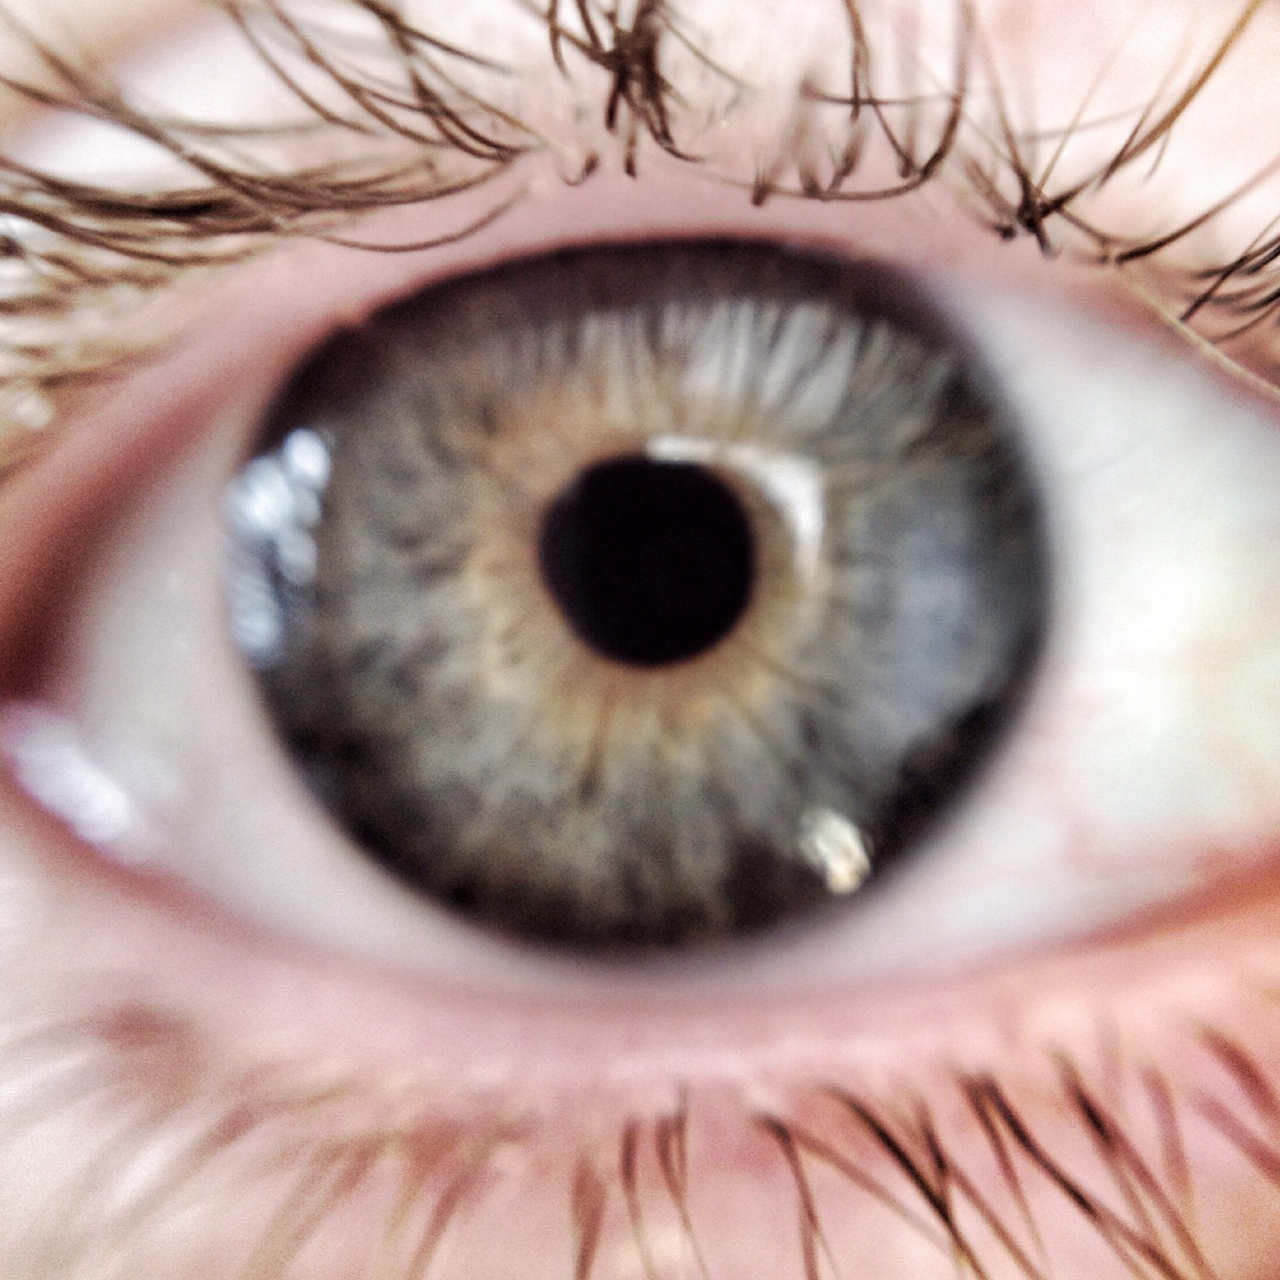 Daughters eye taken using olloclip macro lens. She has awesome lashes